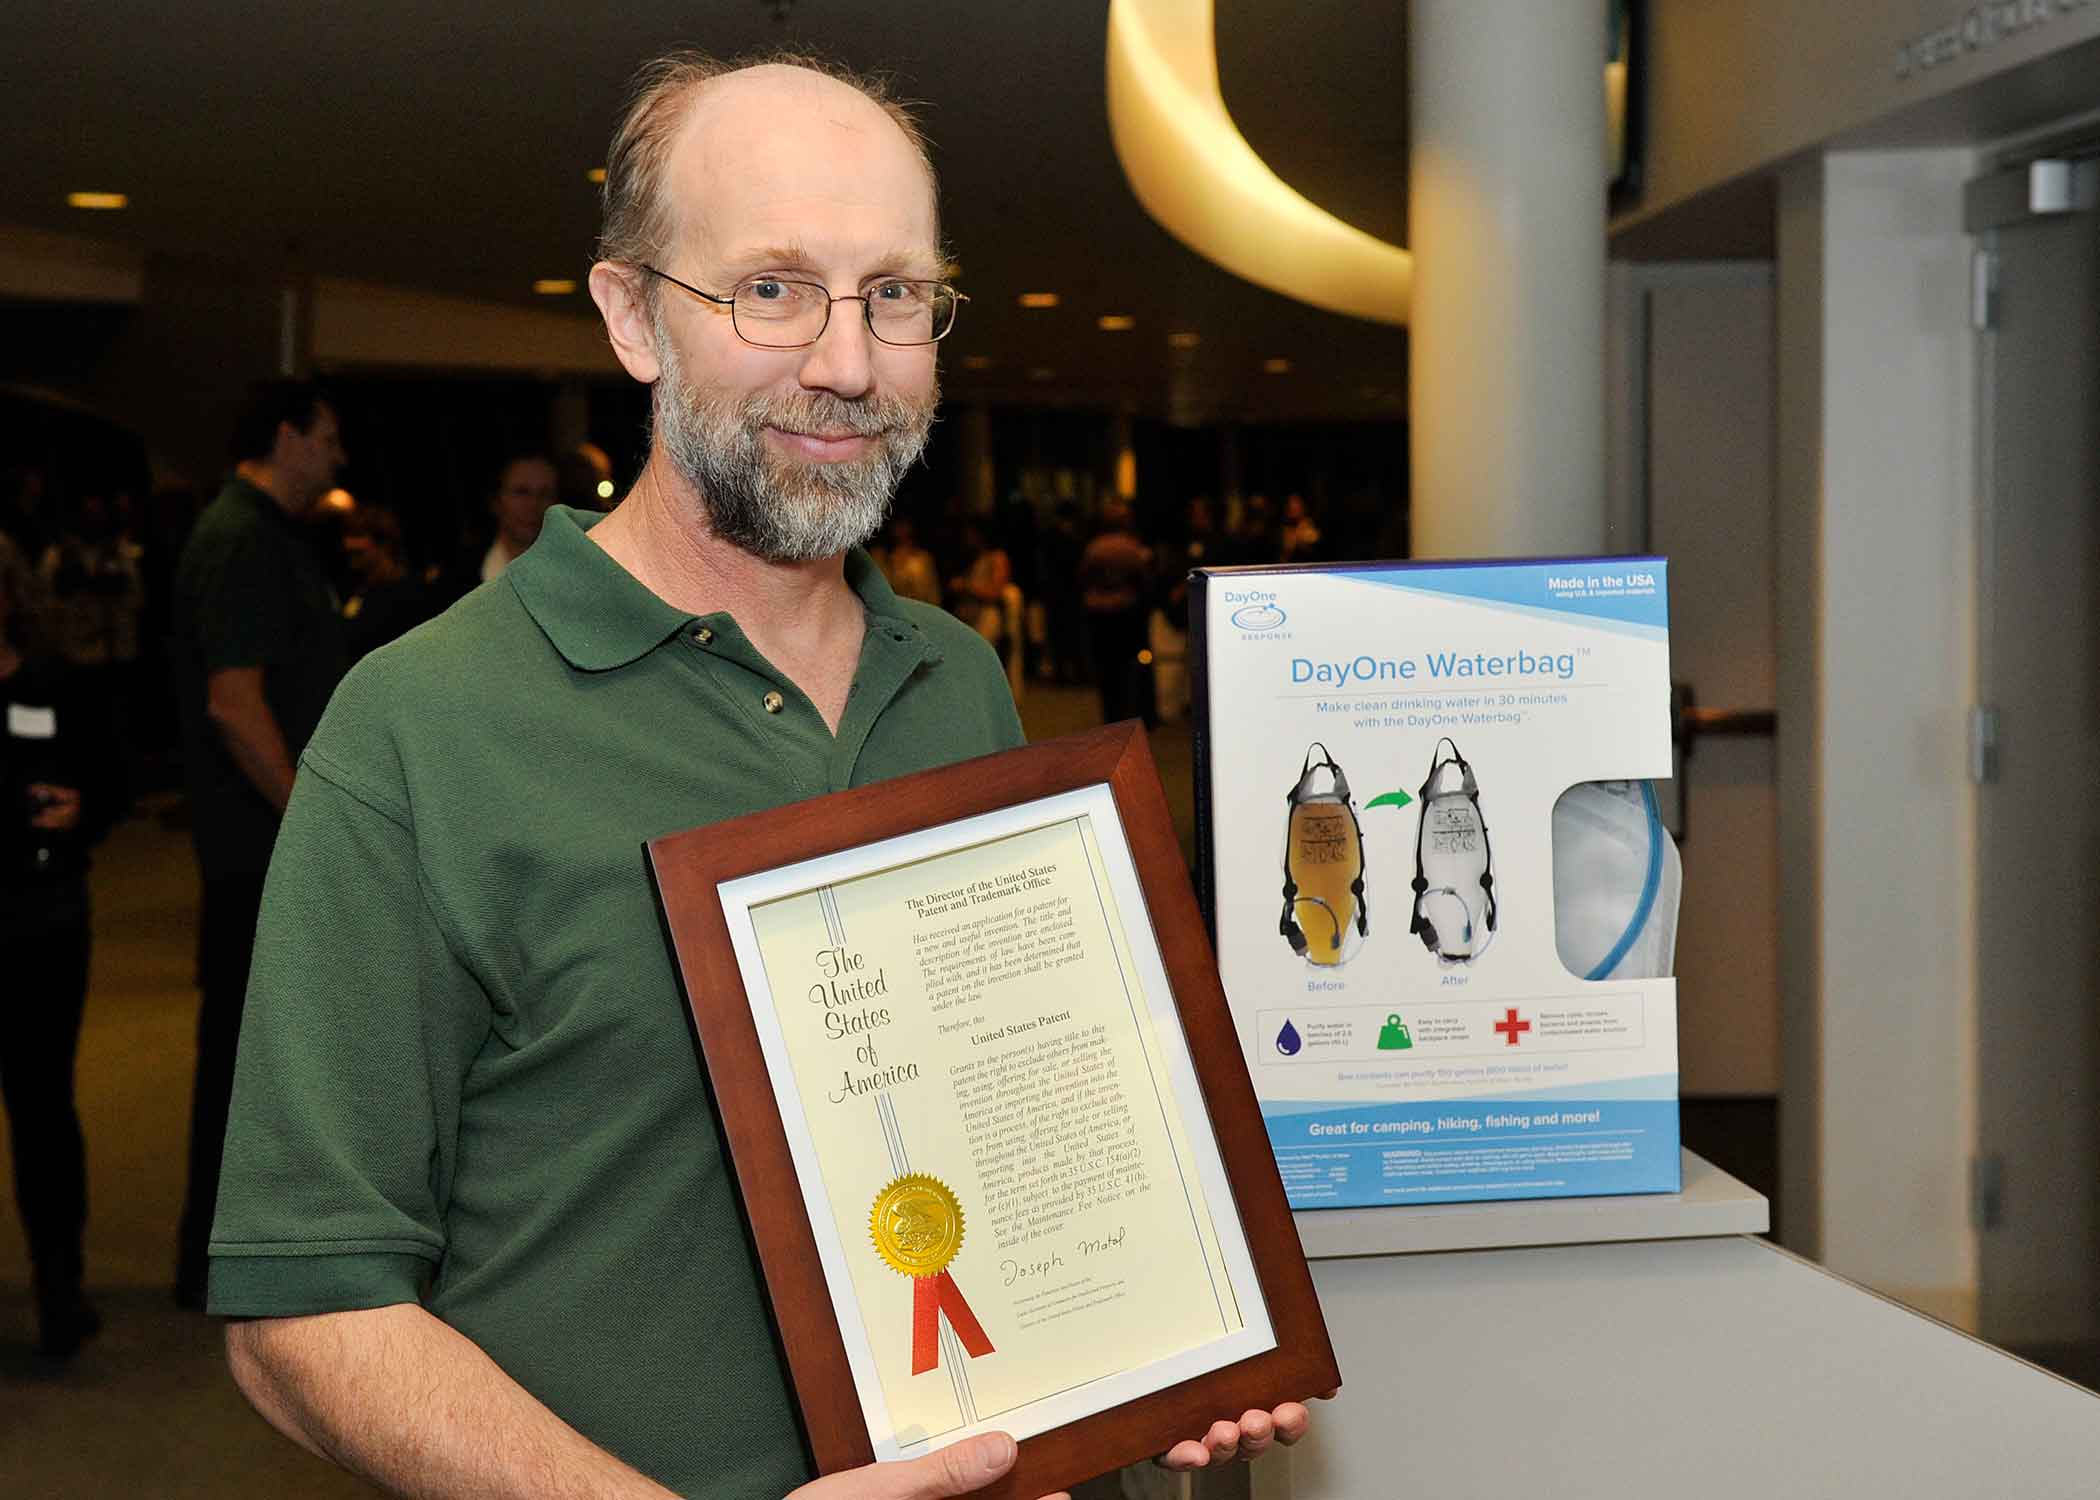 Trygve Lundquist holding his framed patent recognition certificate